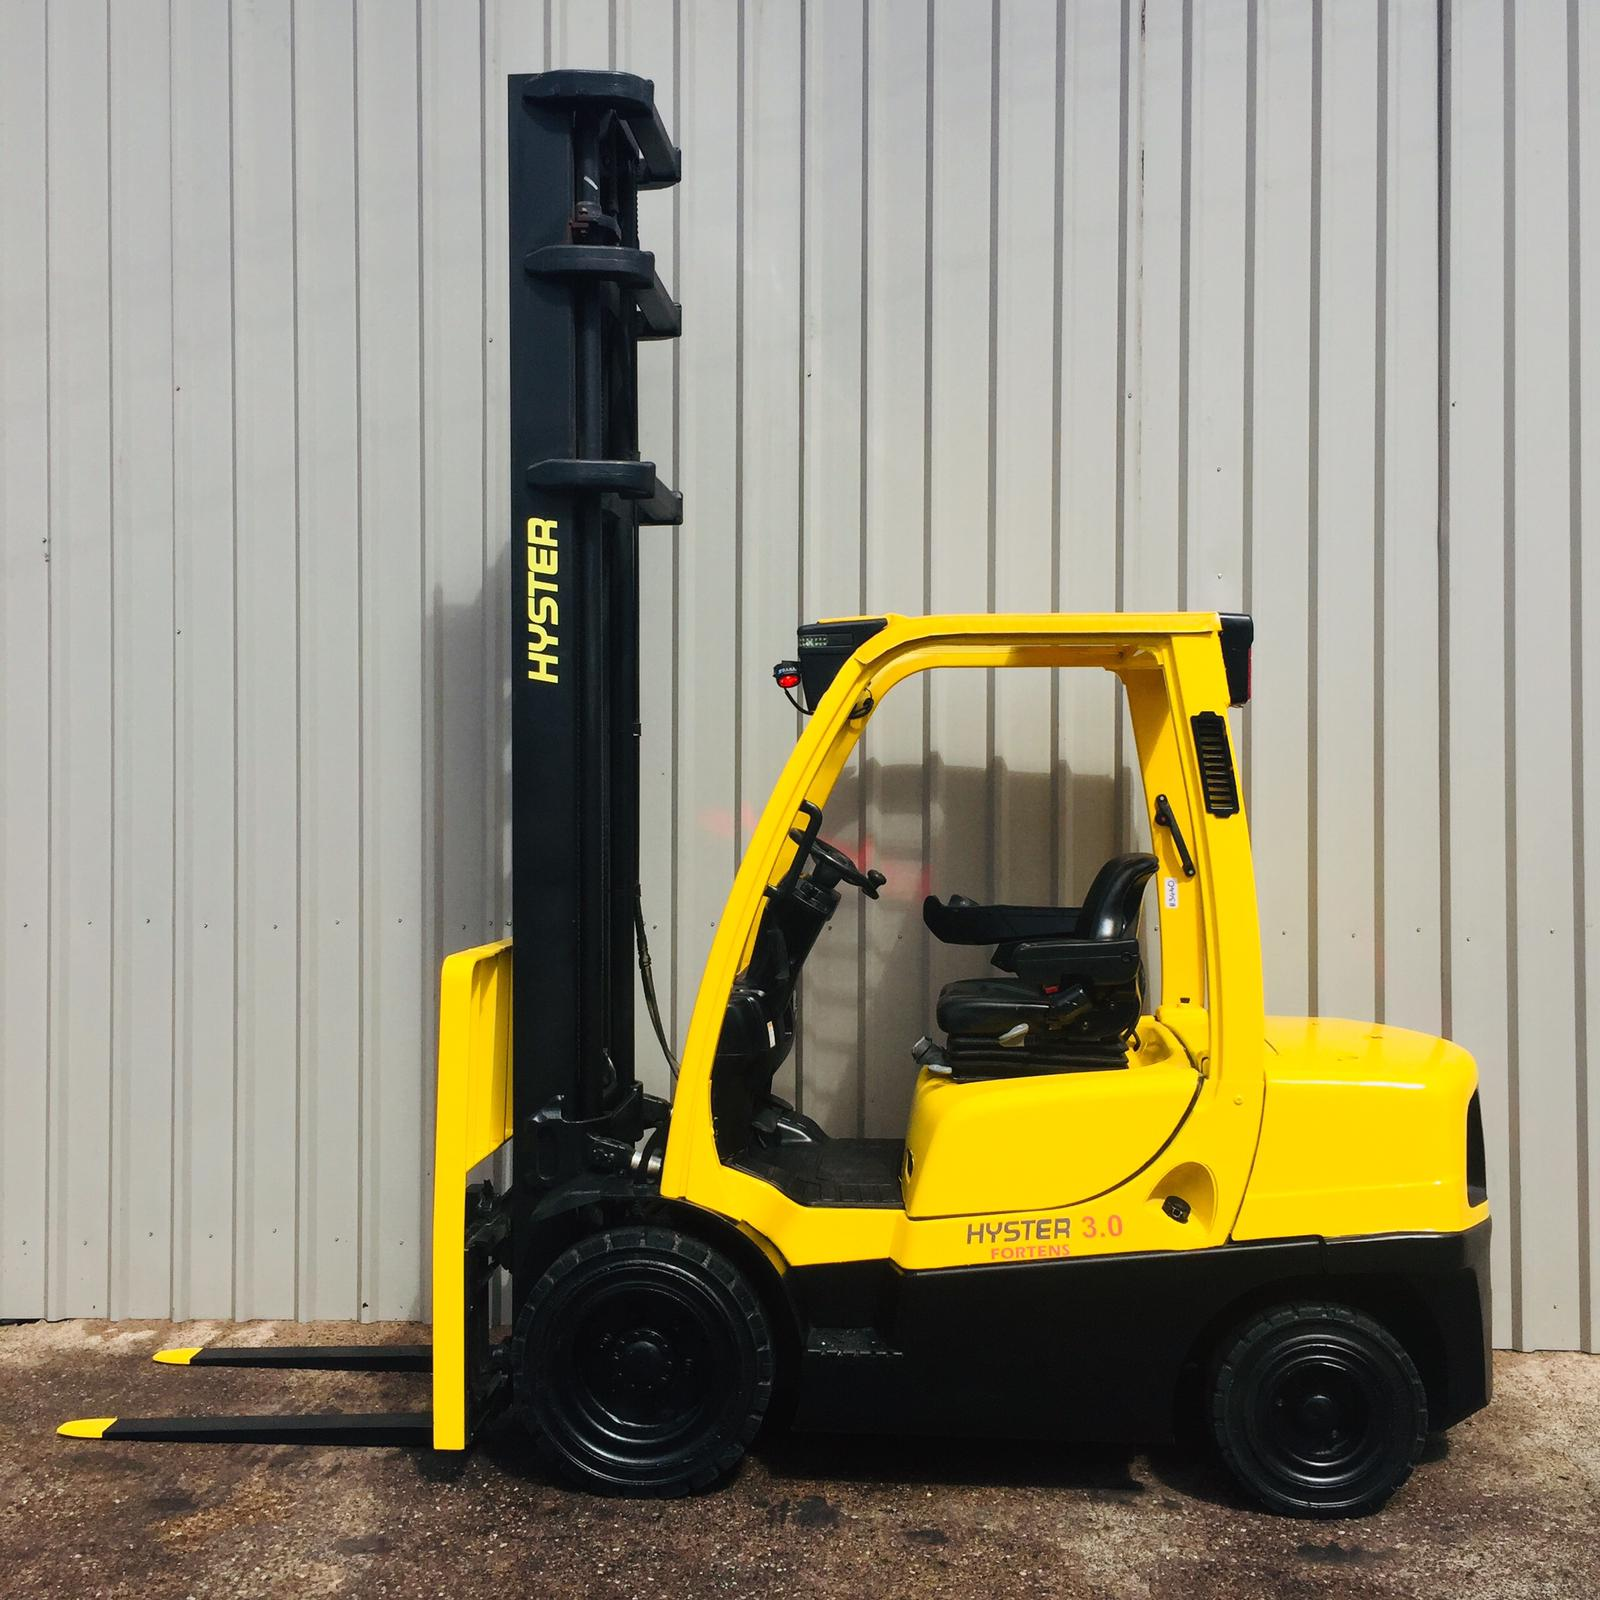 HYSTER H3.0FT L177B33223J #3440 WhatsApp Image 2021-05-17 at 11.12.08 AM (1)